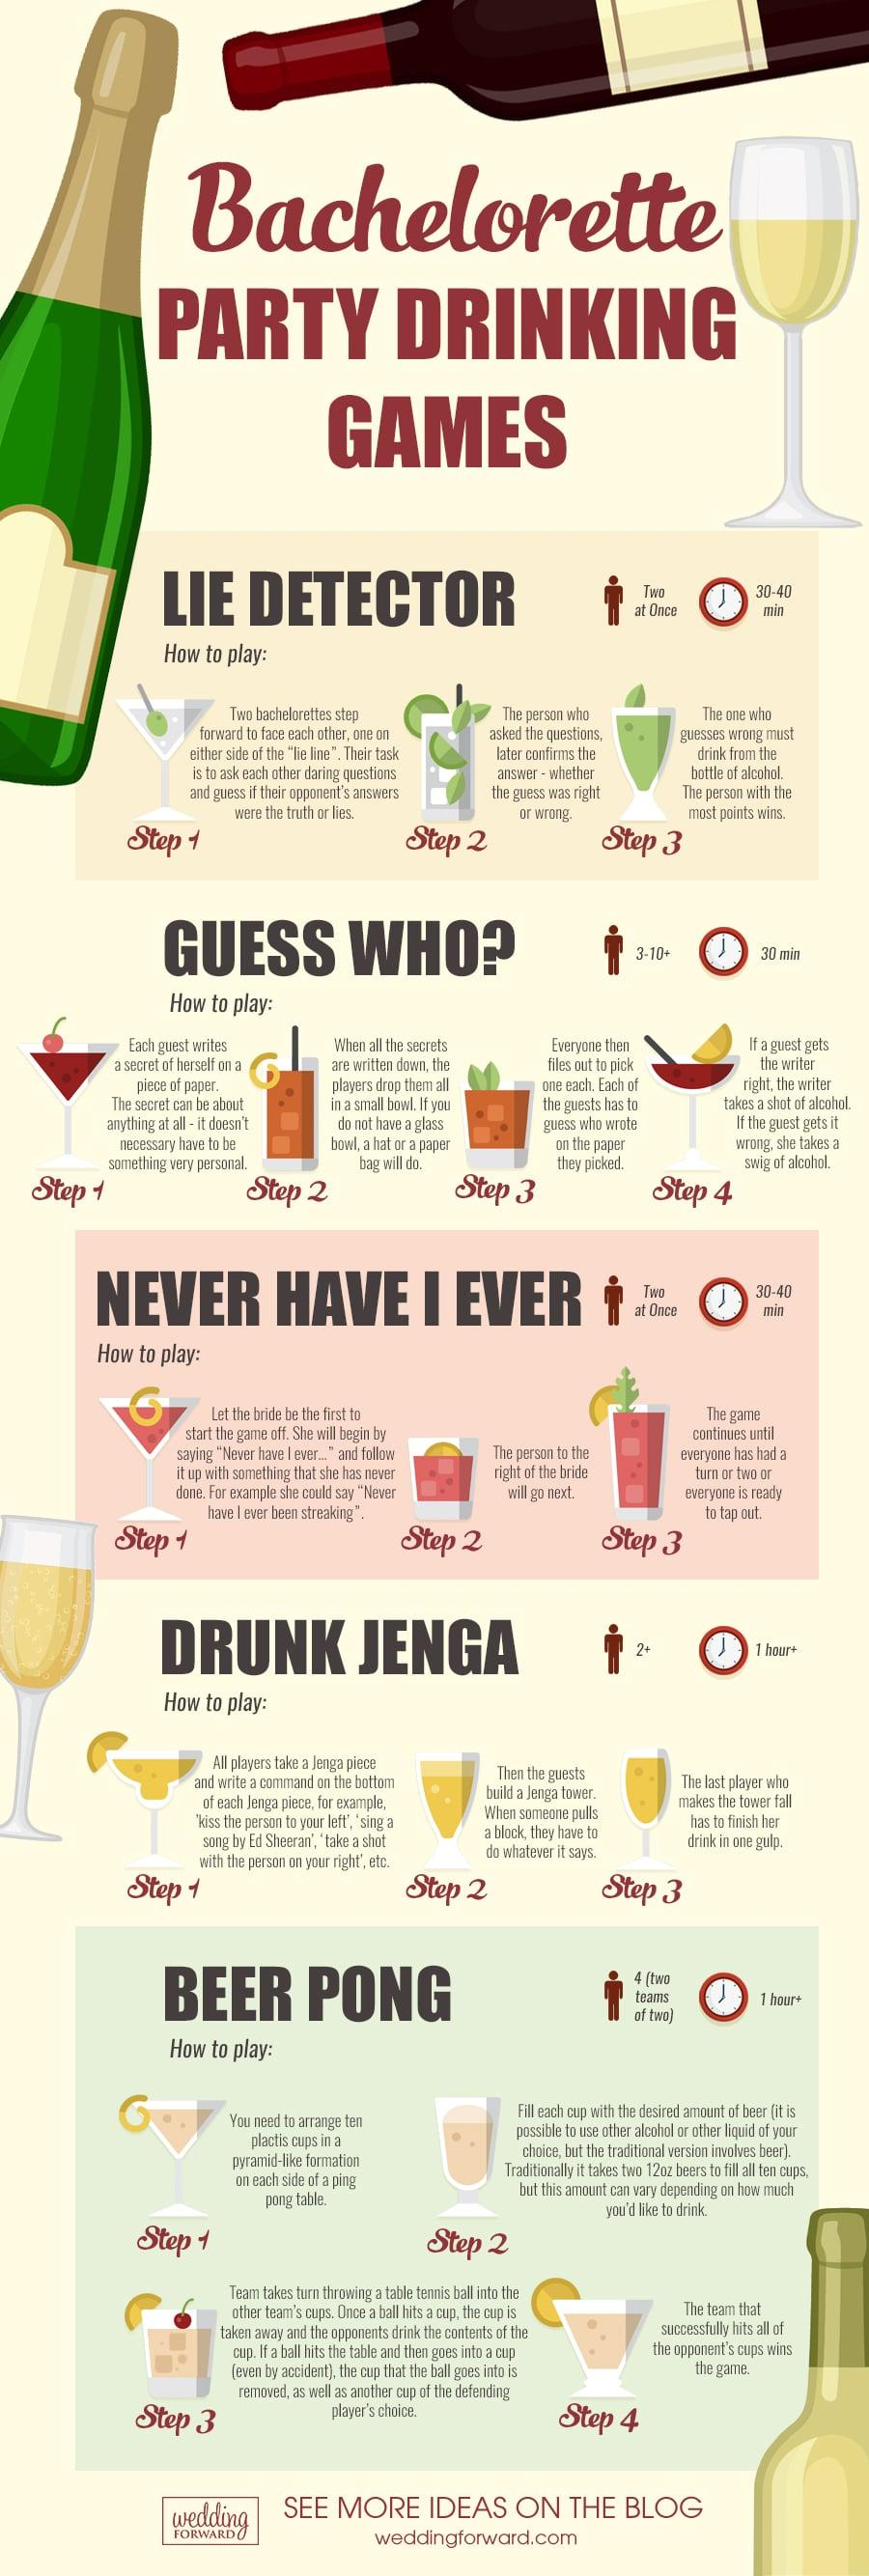 bachelorette party drinking games infographic